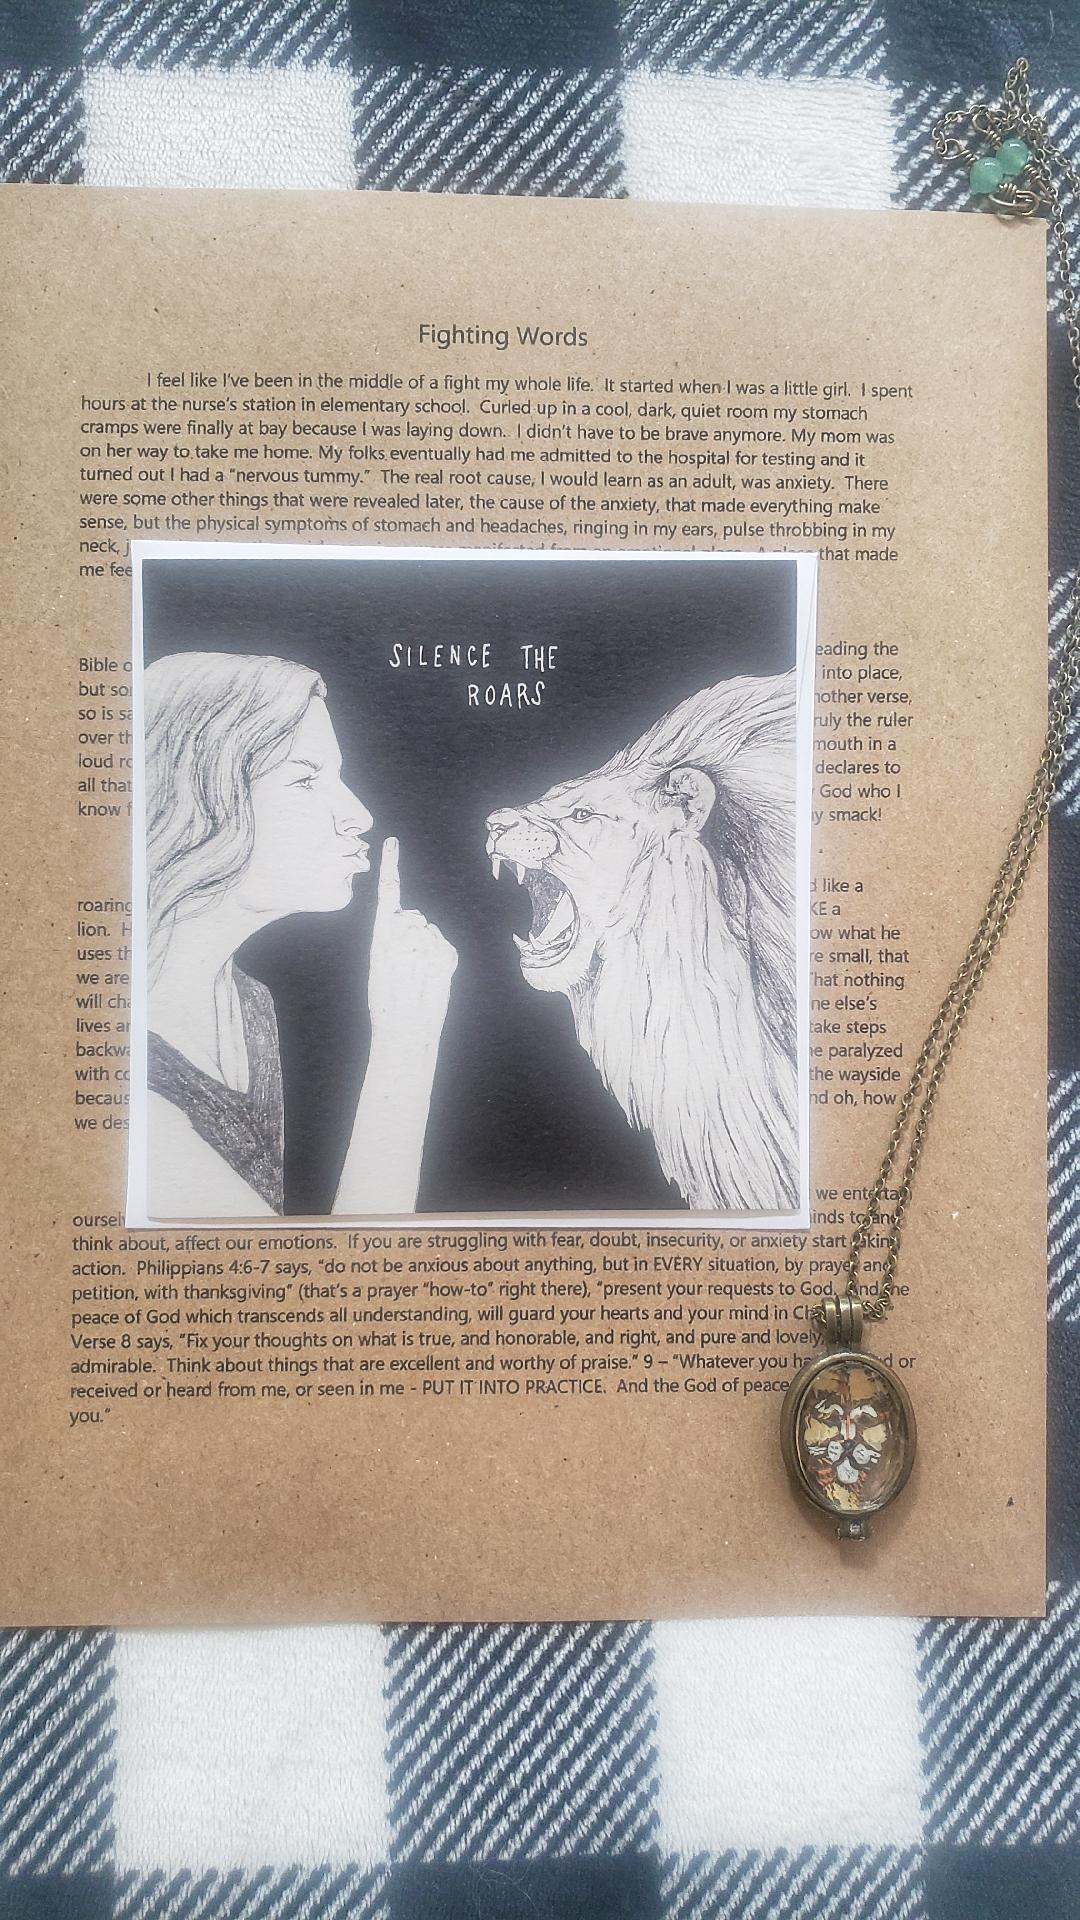 Lion Locket (includes Fighting Words letter and card)